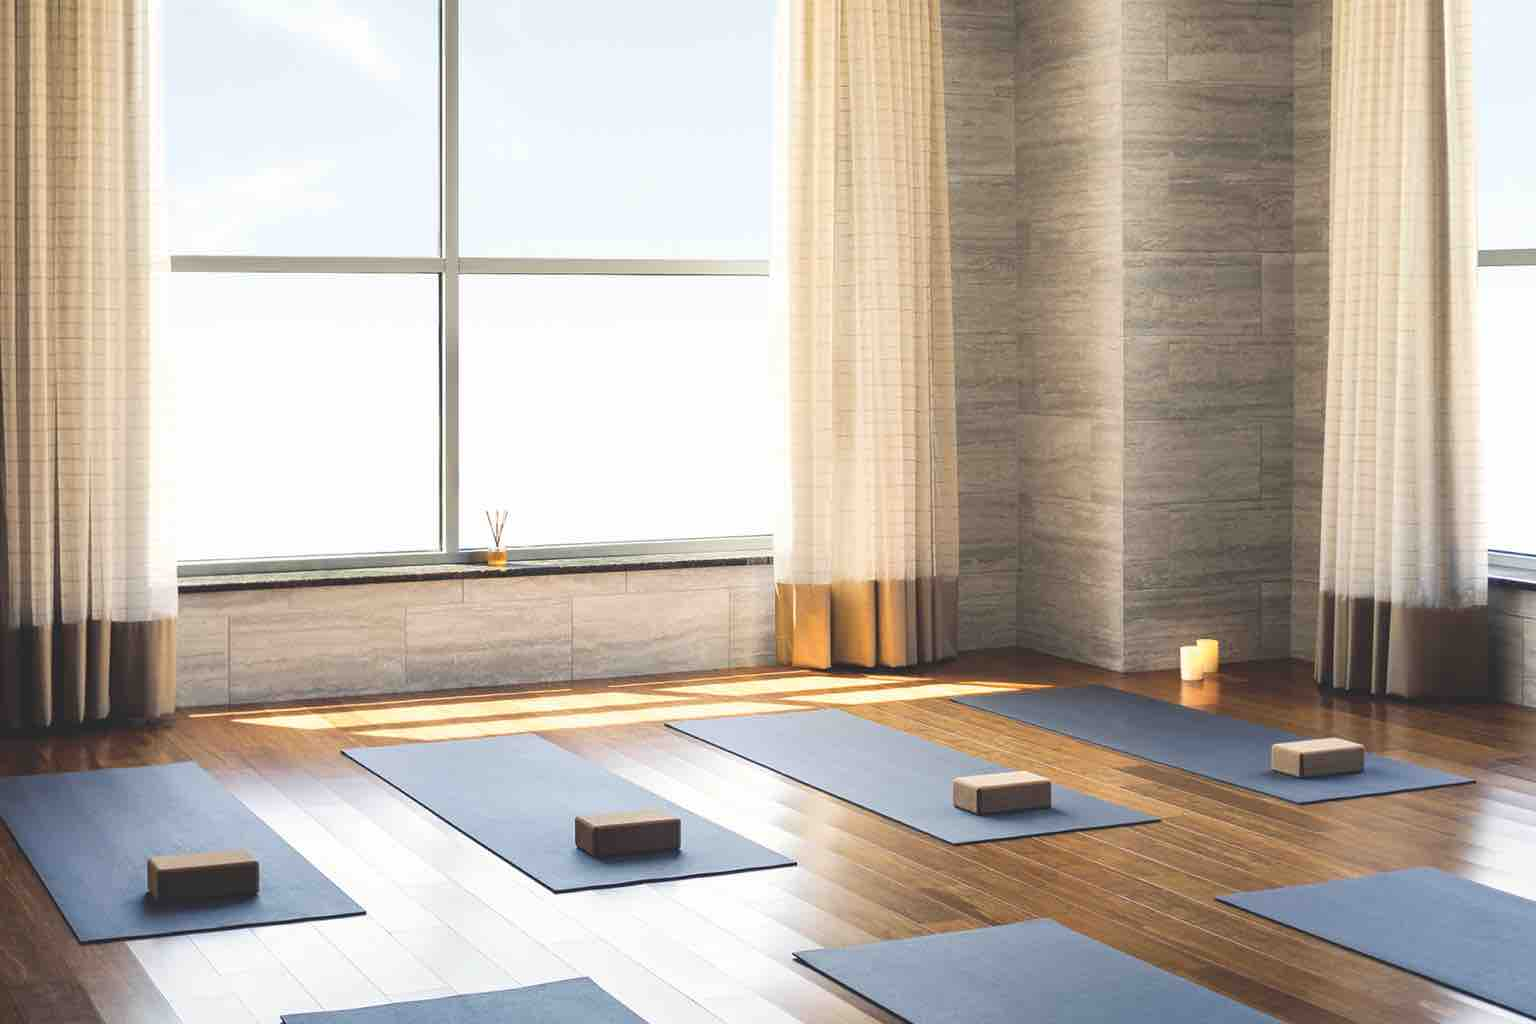 Blue yoga mats, each equipped with a yoga brick, lined up on the wood floor of a light-filled studio